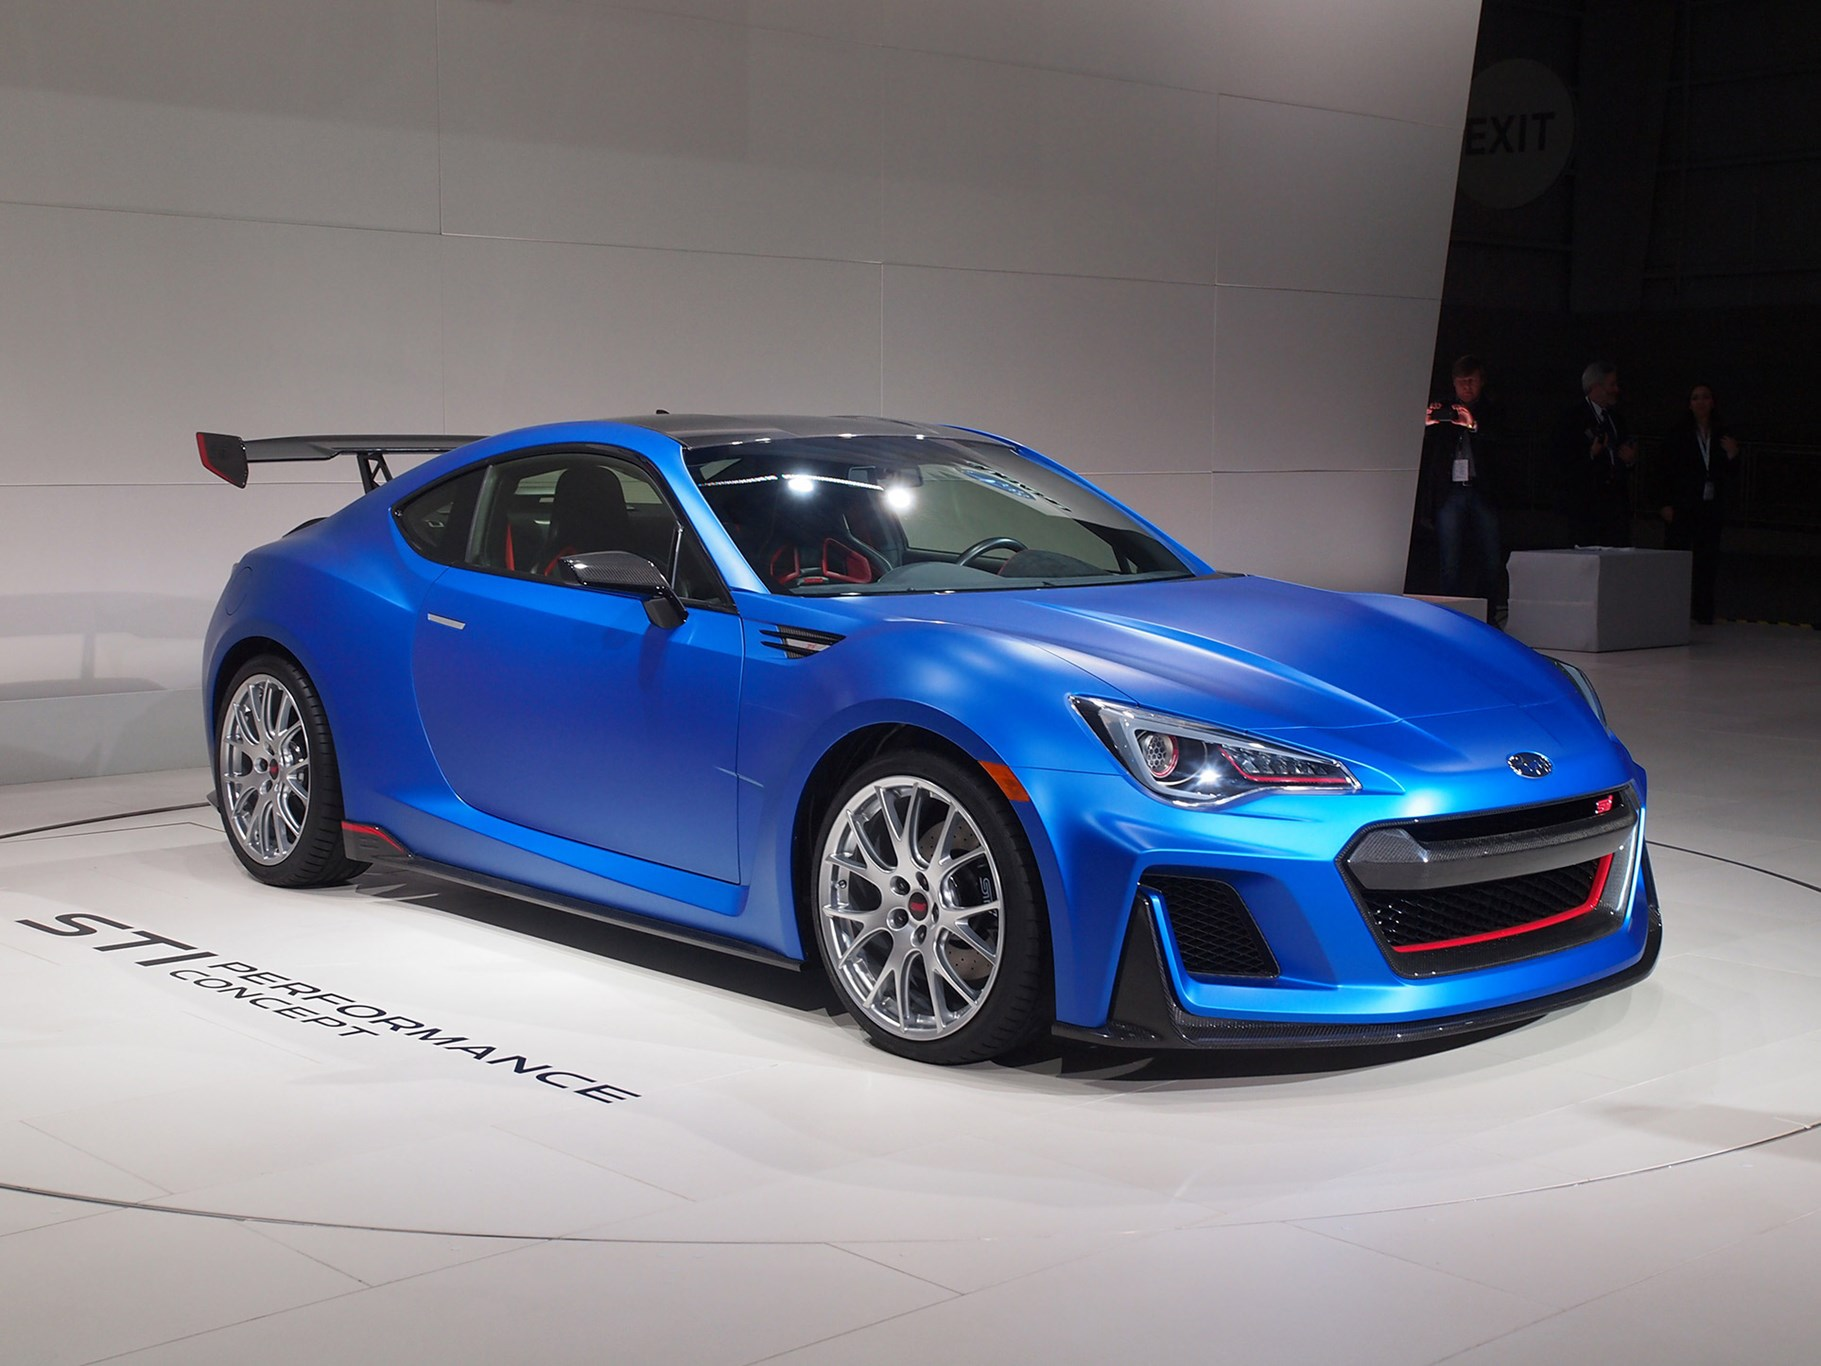 Subaru Brz By Sti 300bhp Coupe Muscles Into New York By